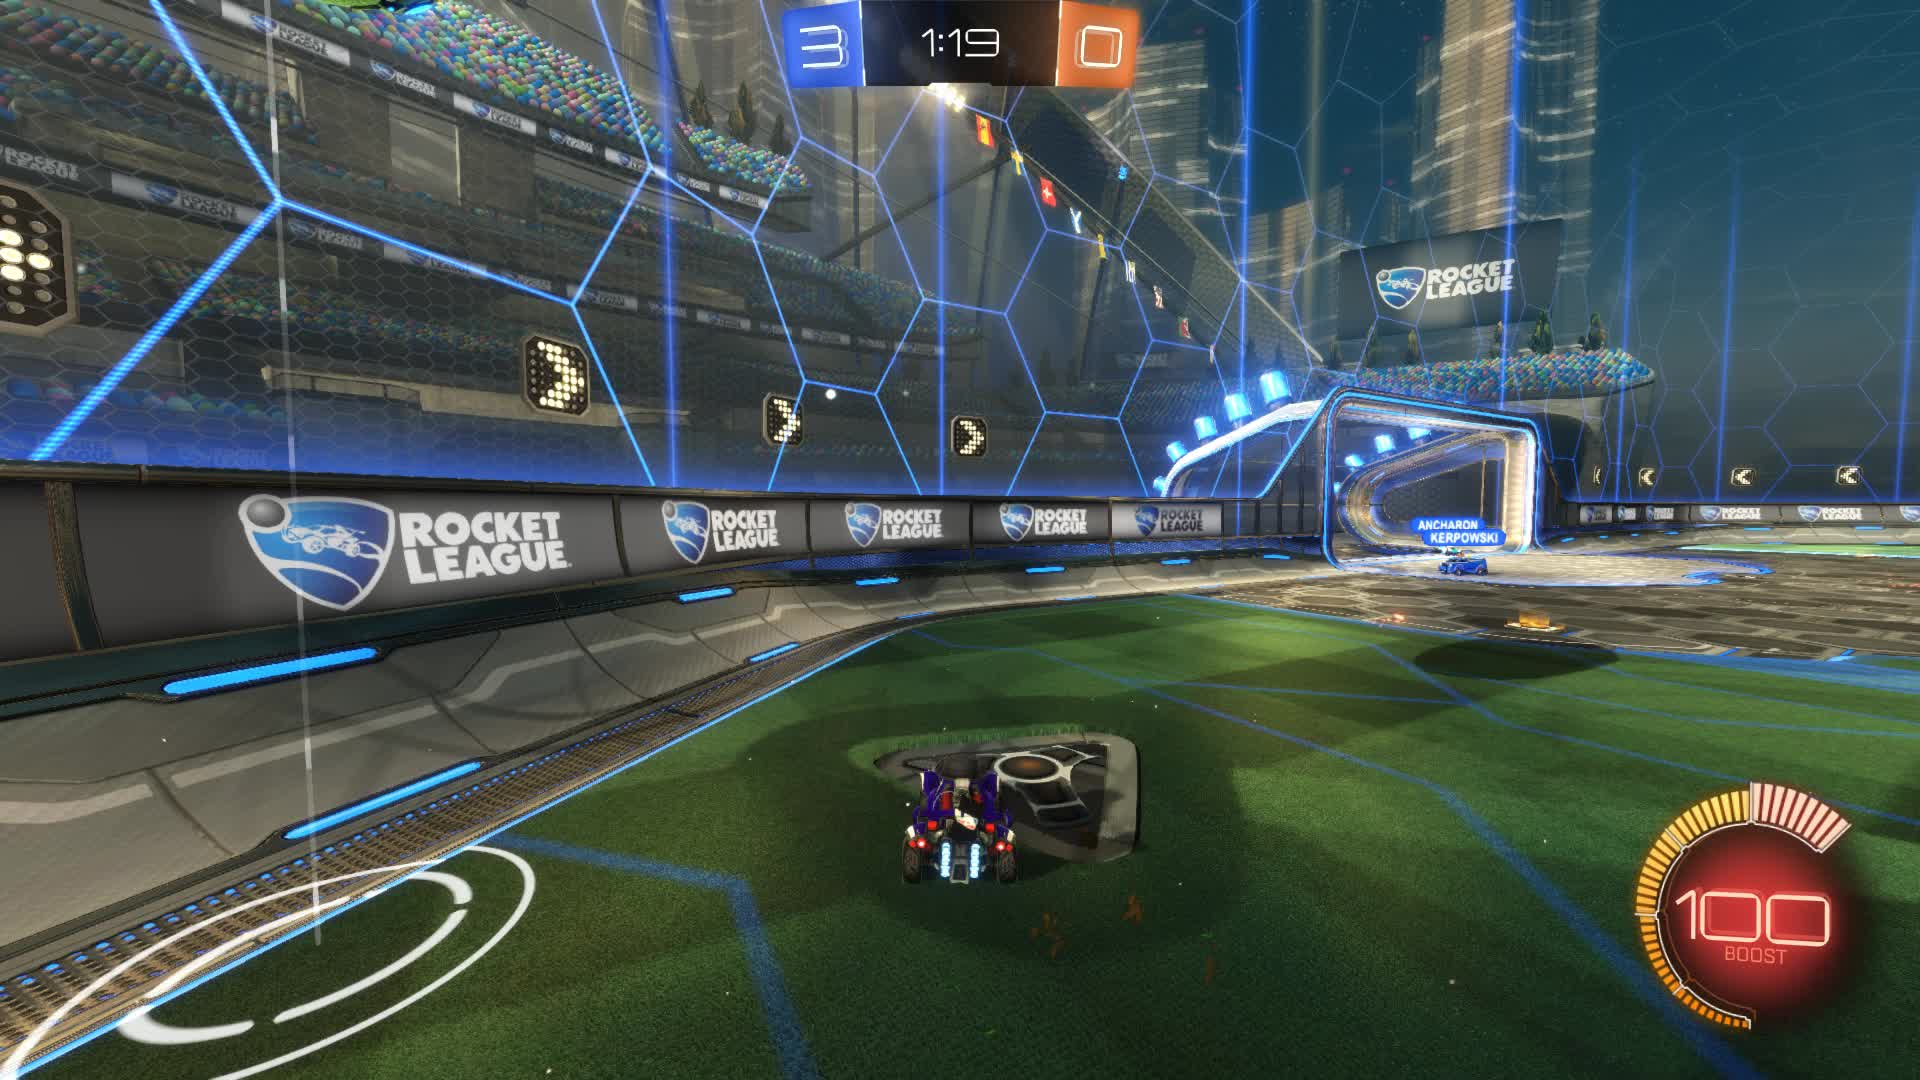 RocketLeague, Sorry! Sorry! No problem. GIFs